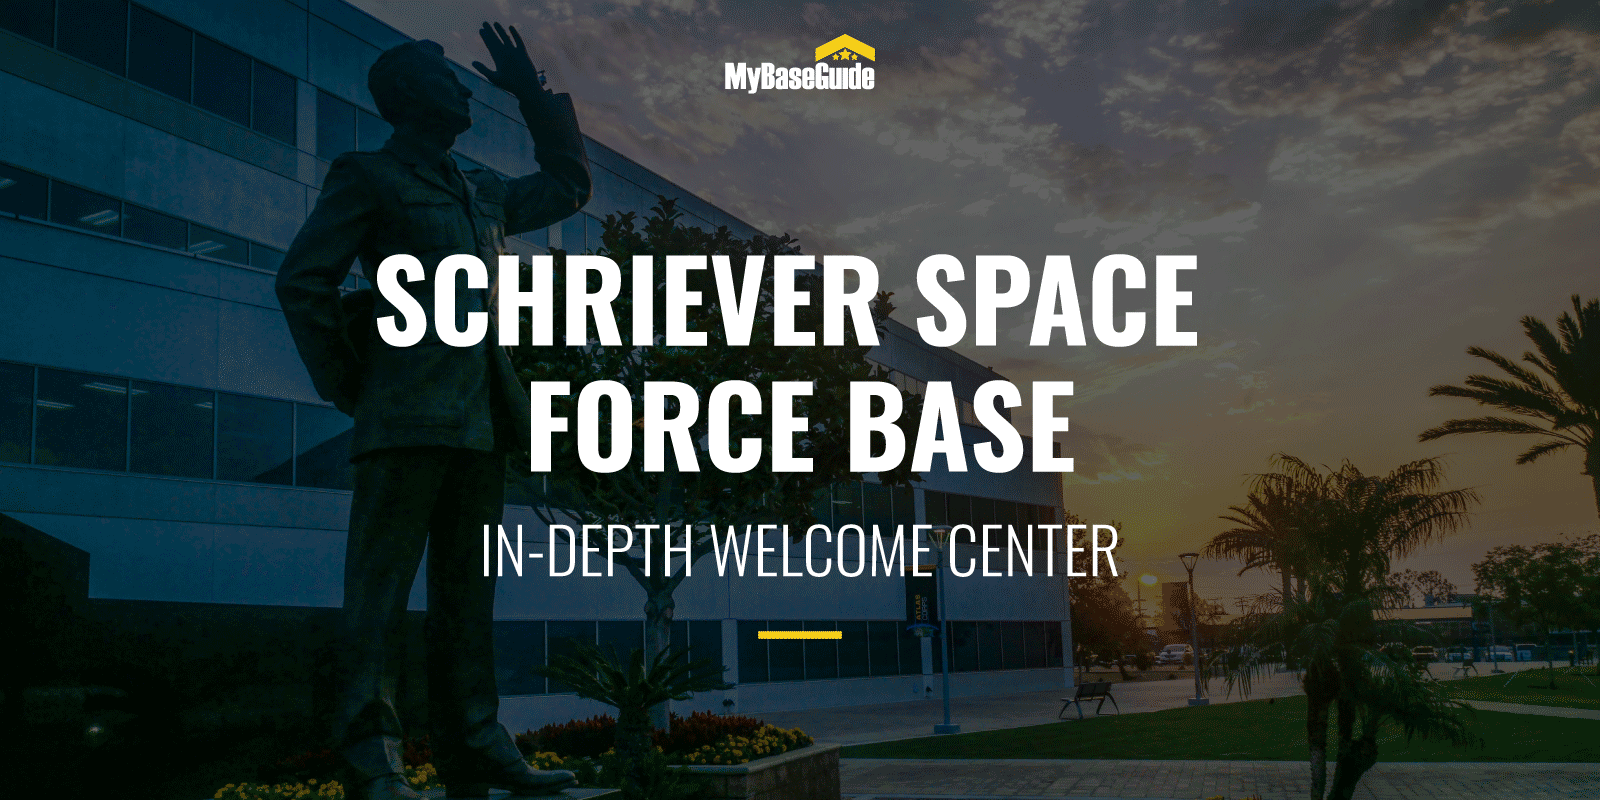 Schriever AFB Welcome Center (Now Schriever Space Force Base)